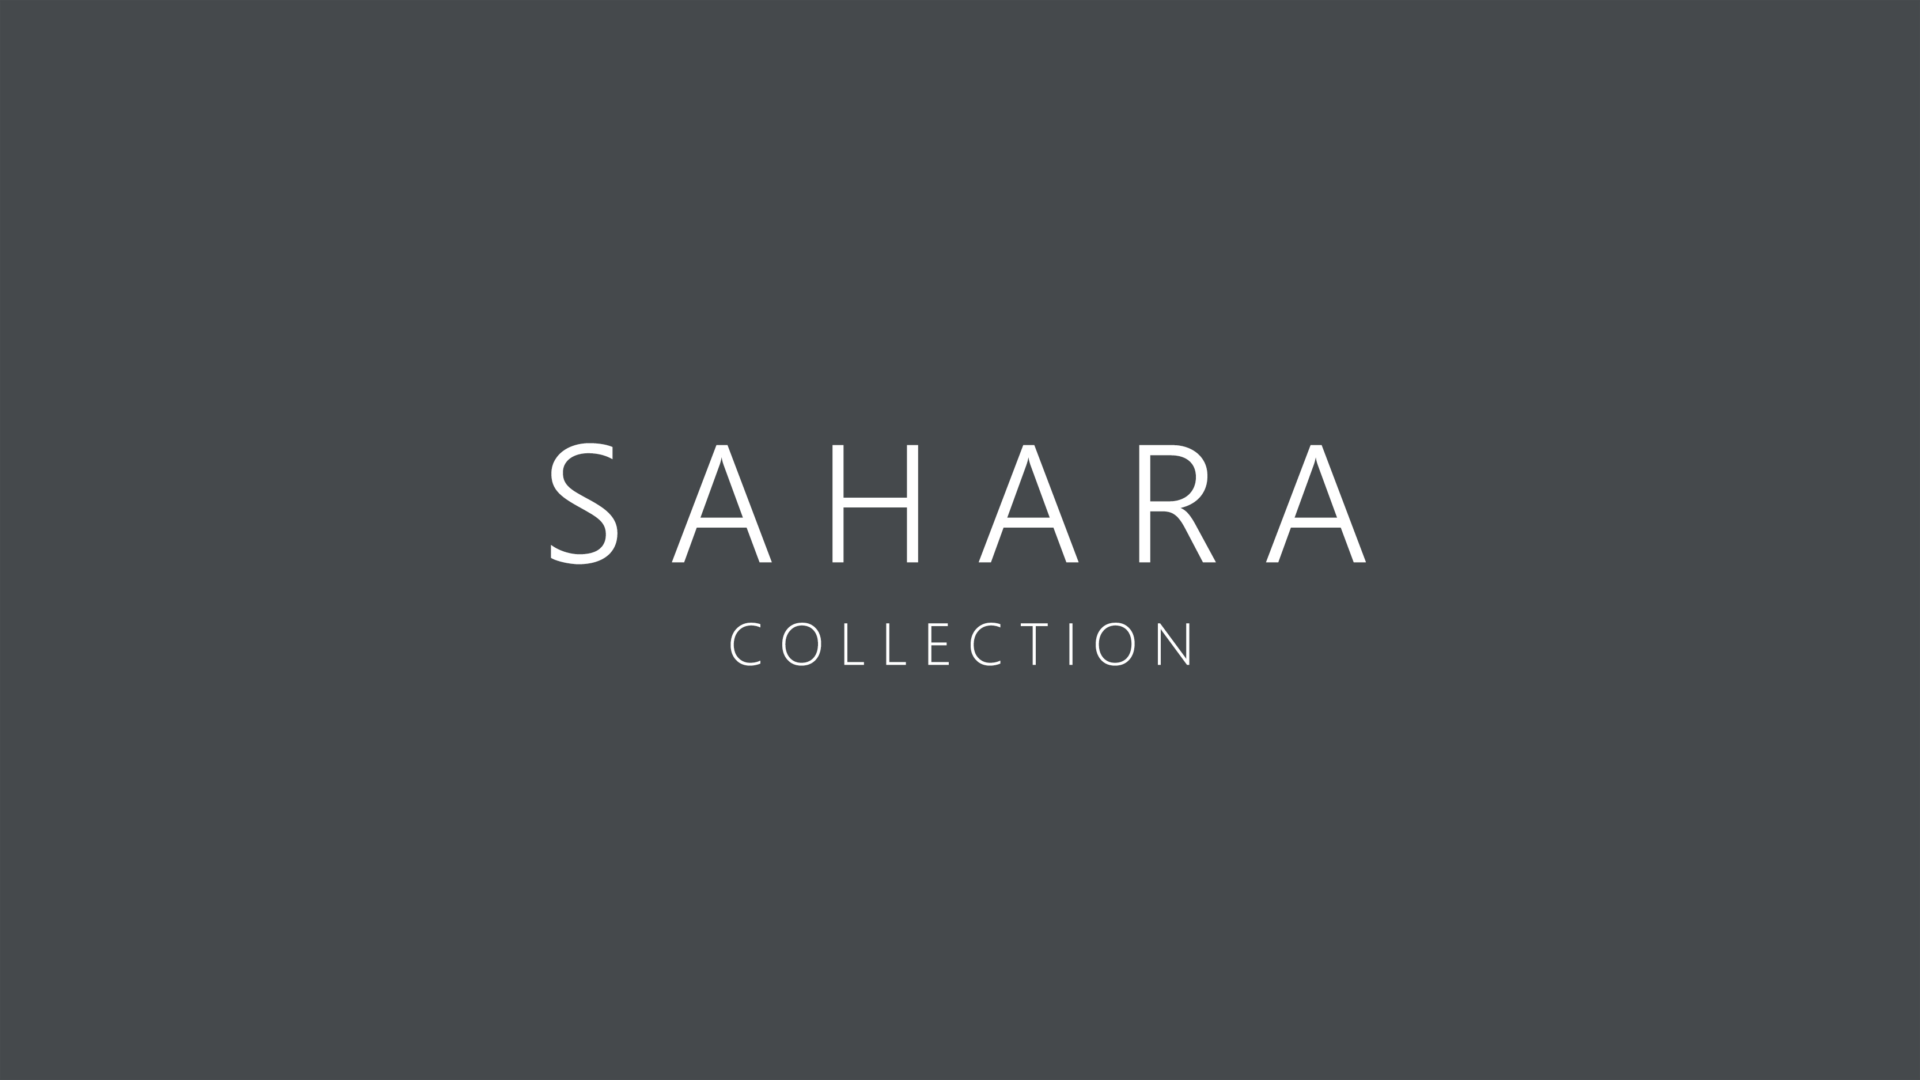 Sahara Collection